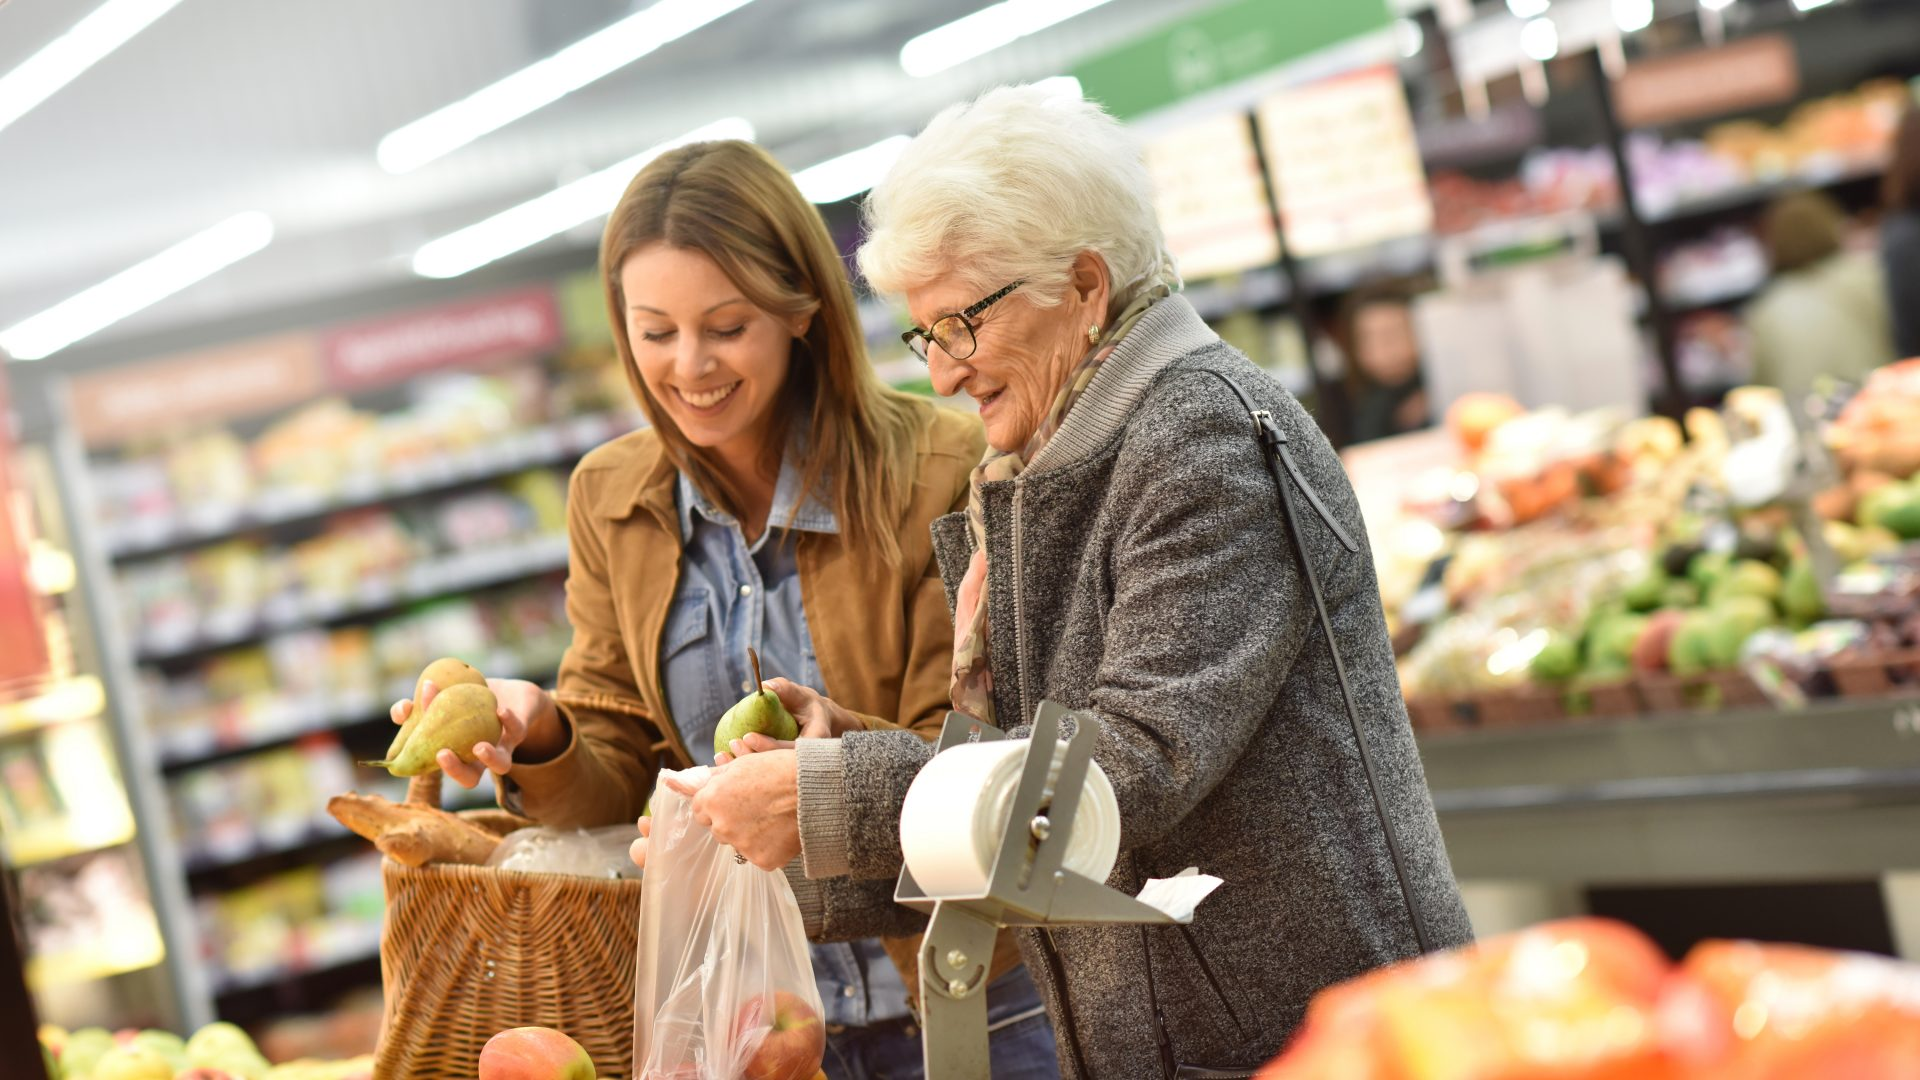 stock-photo-elderly-woman-with-young-woman-at-the-grocery-store-371623984